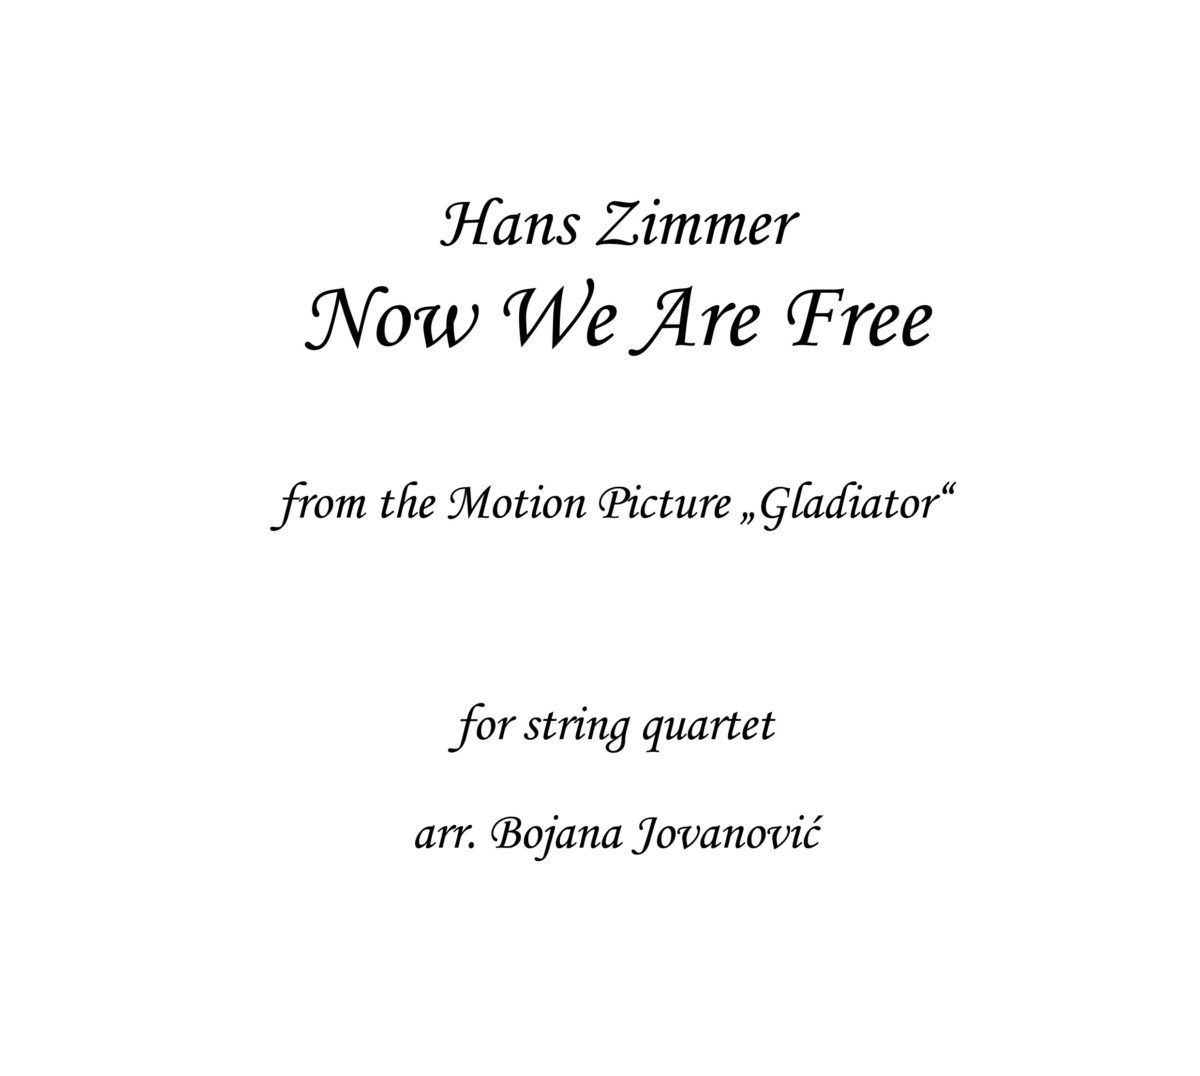 Now We Are Free Hans Zimmer Sheet music